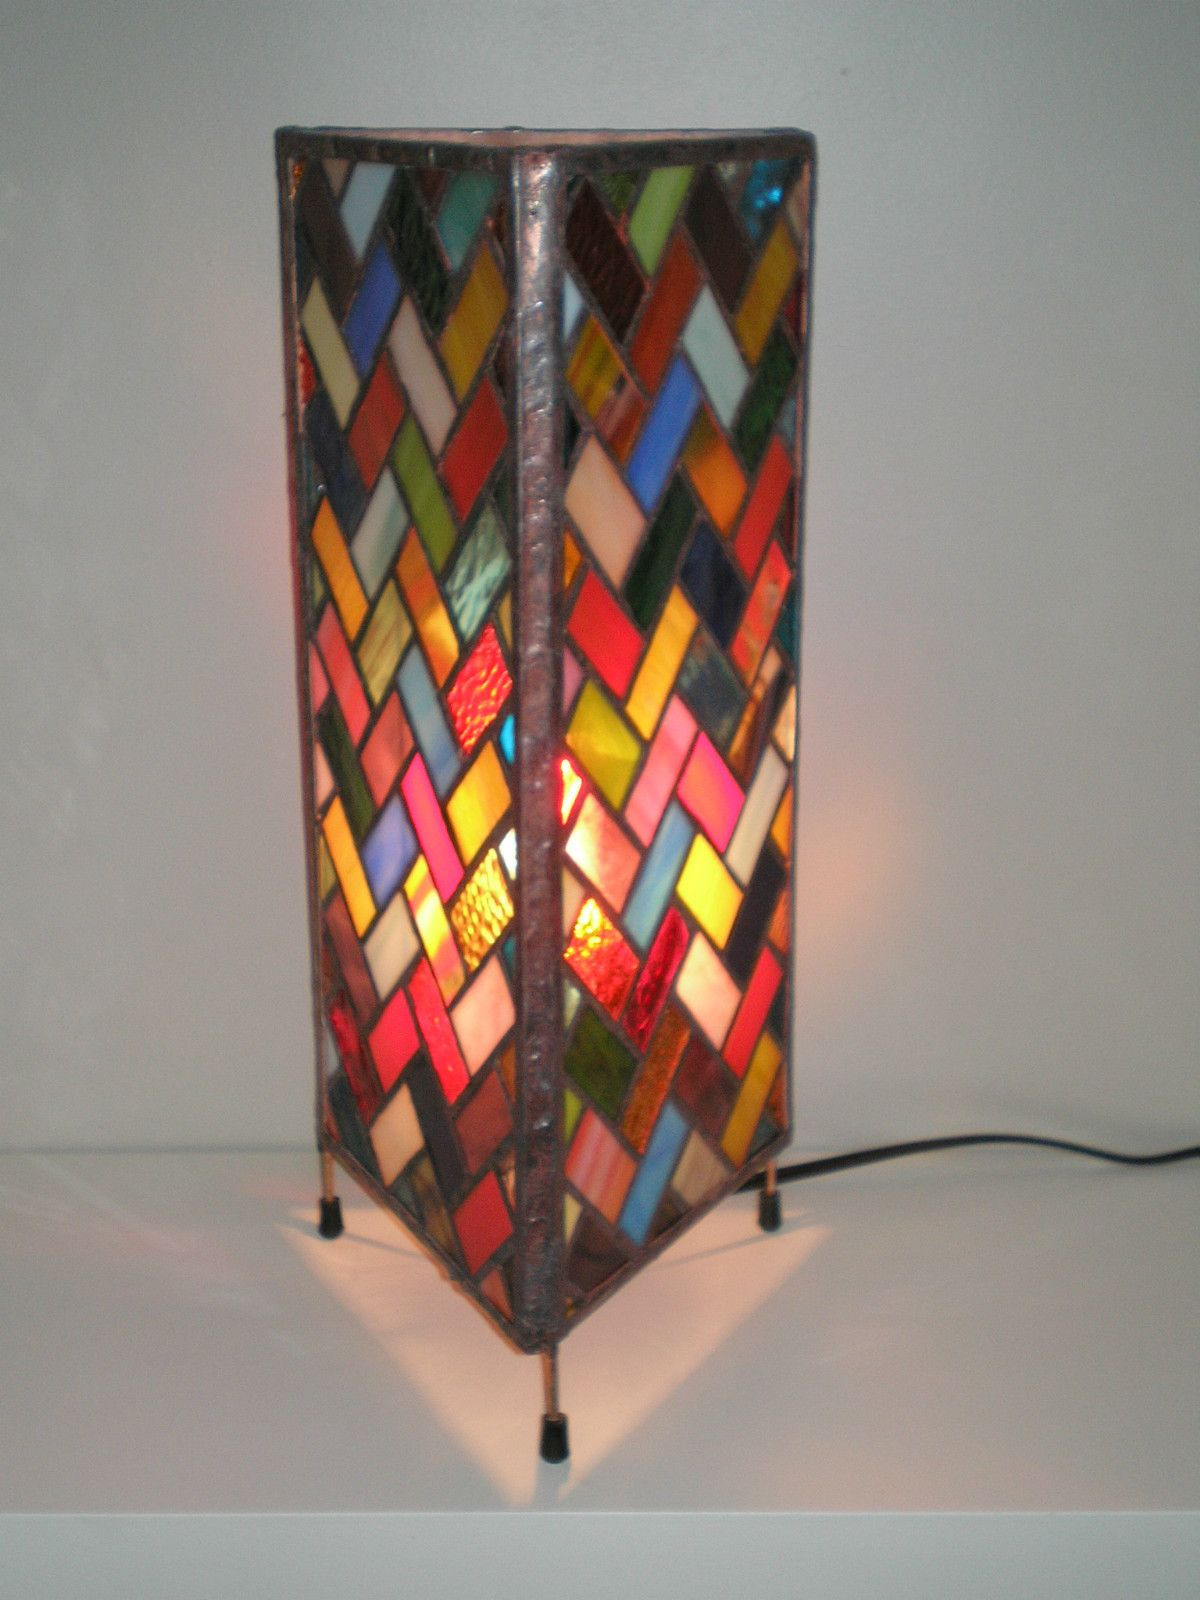 Lamp Glas In Lood Herringbone Pattern Stained Glass Column Table Lamp Ebay Wali